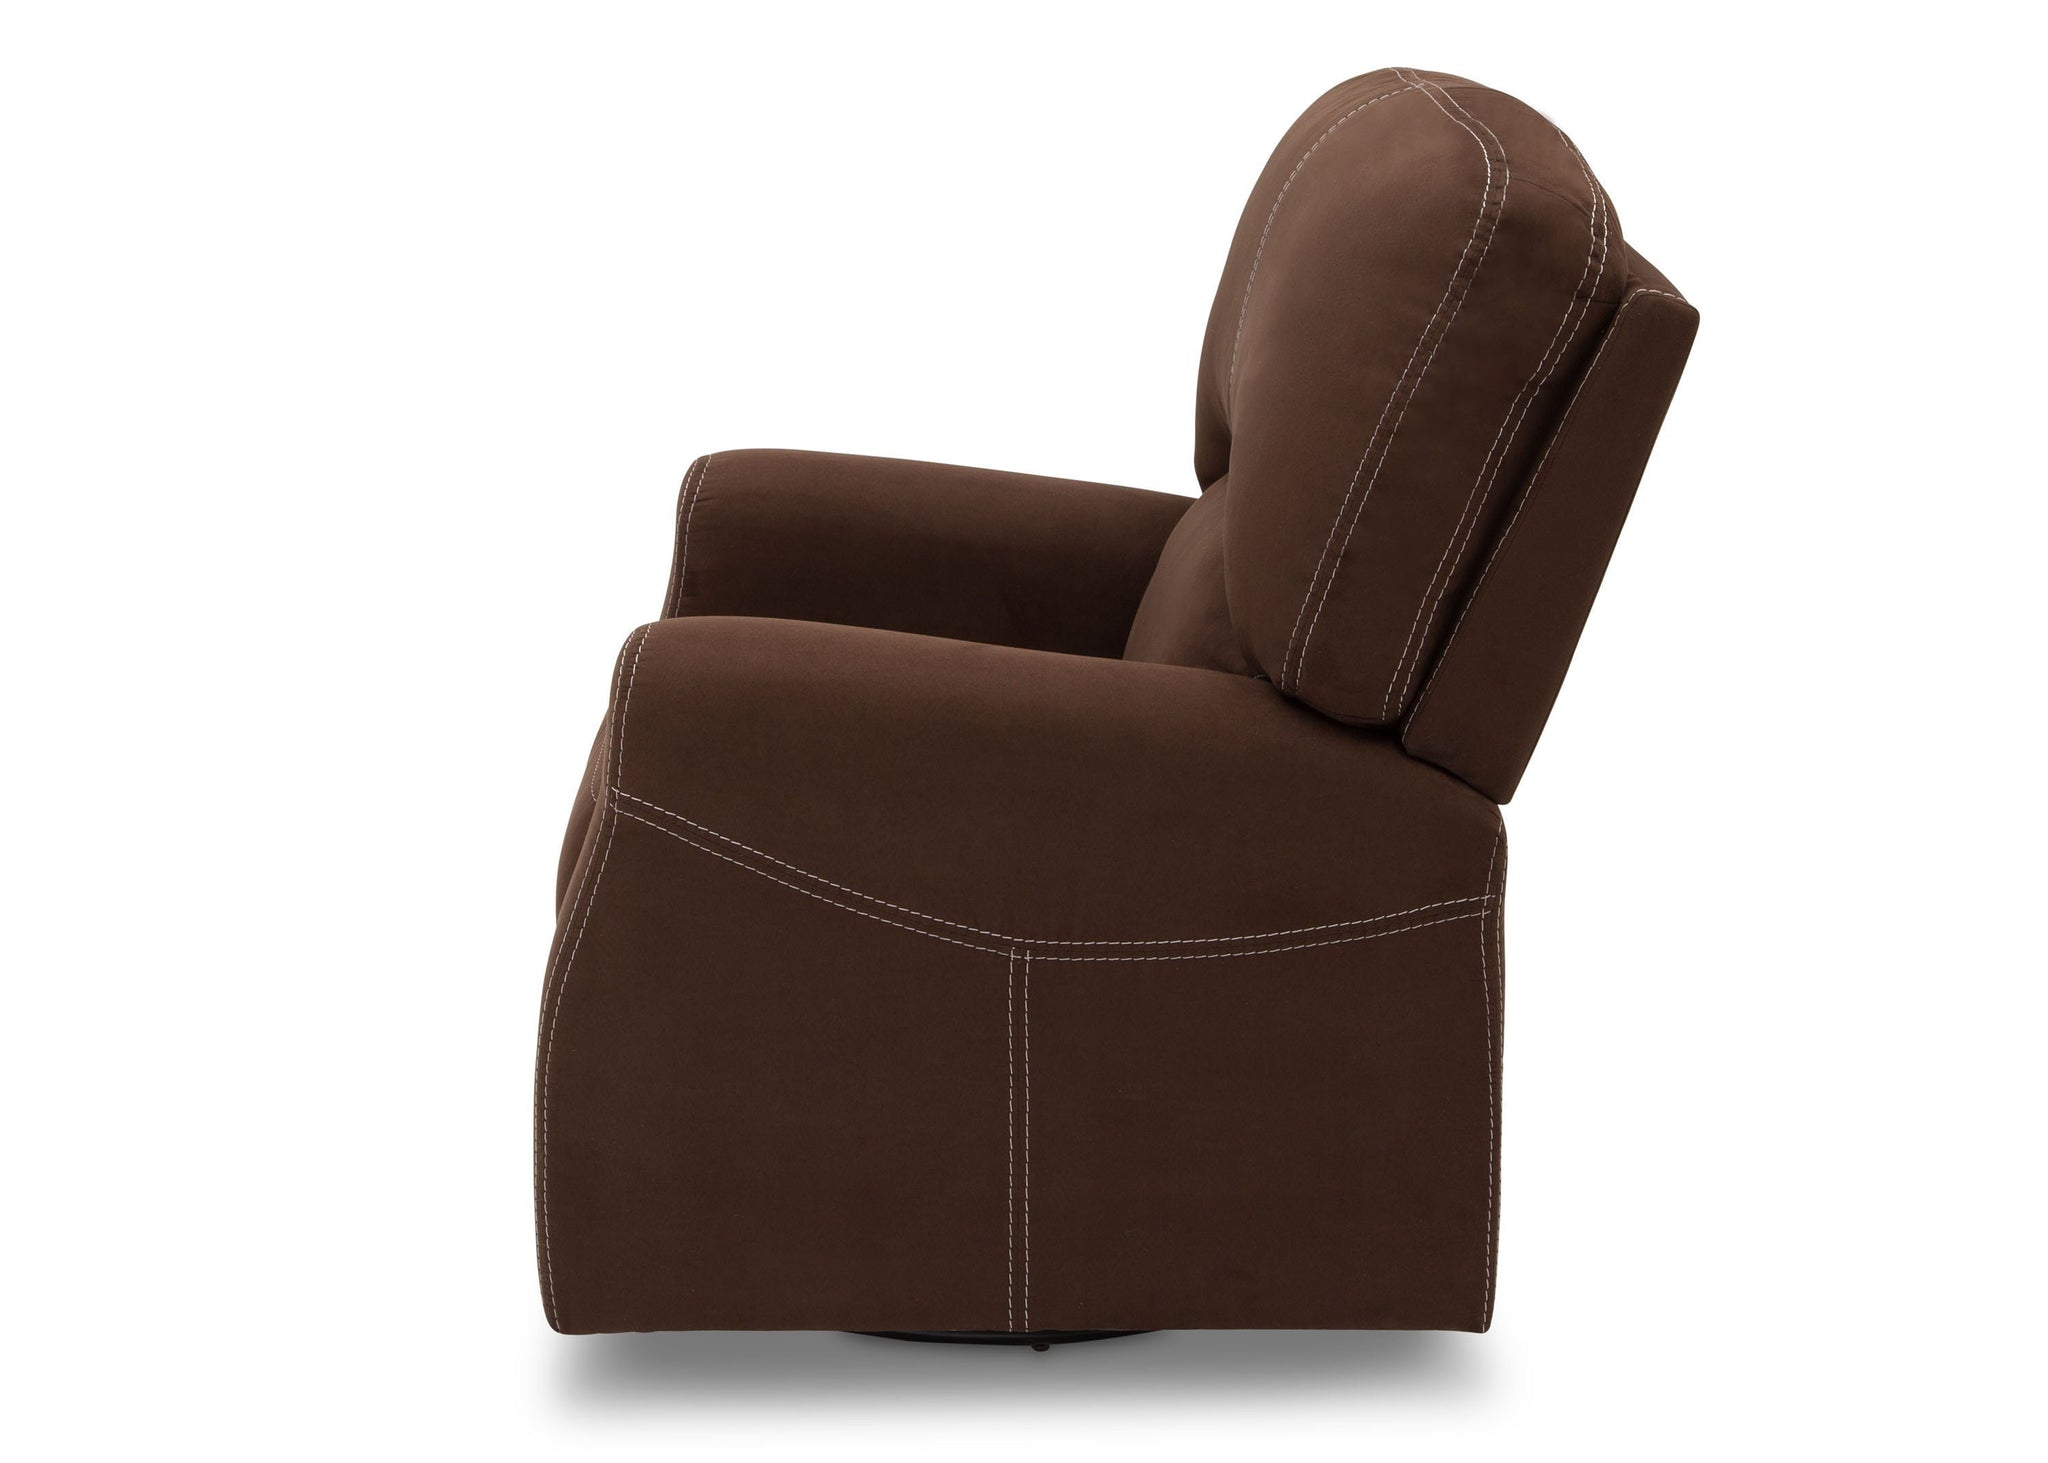 Delta Children Cocoa (258) Marshall Nursery Glider Swivel Rocker Chair, left side view, b4b